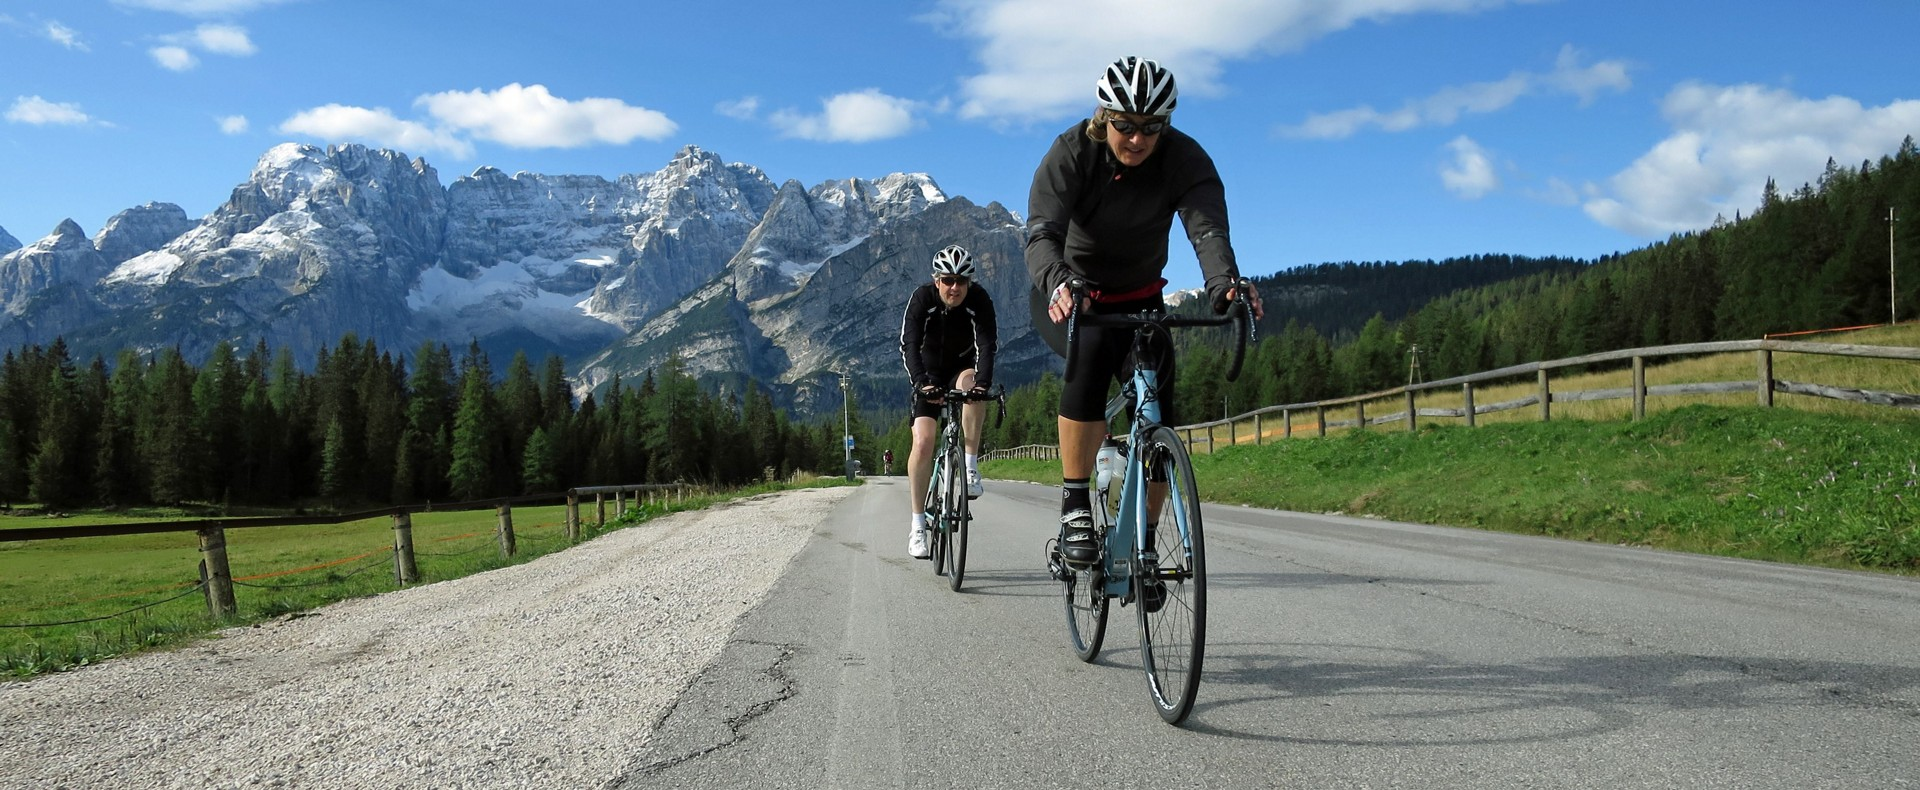 Raid Dolomiti2.jpg - Italy - Dolomites and Alps - Italia Road Cycling